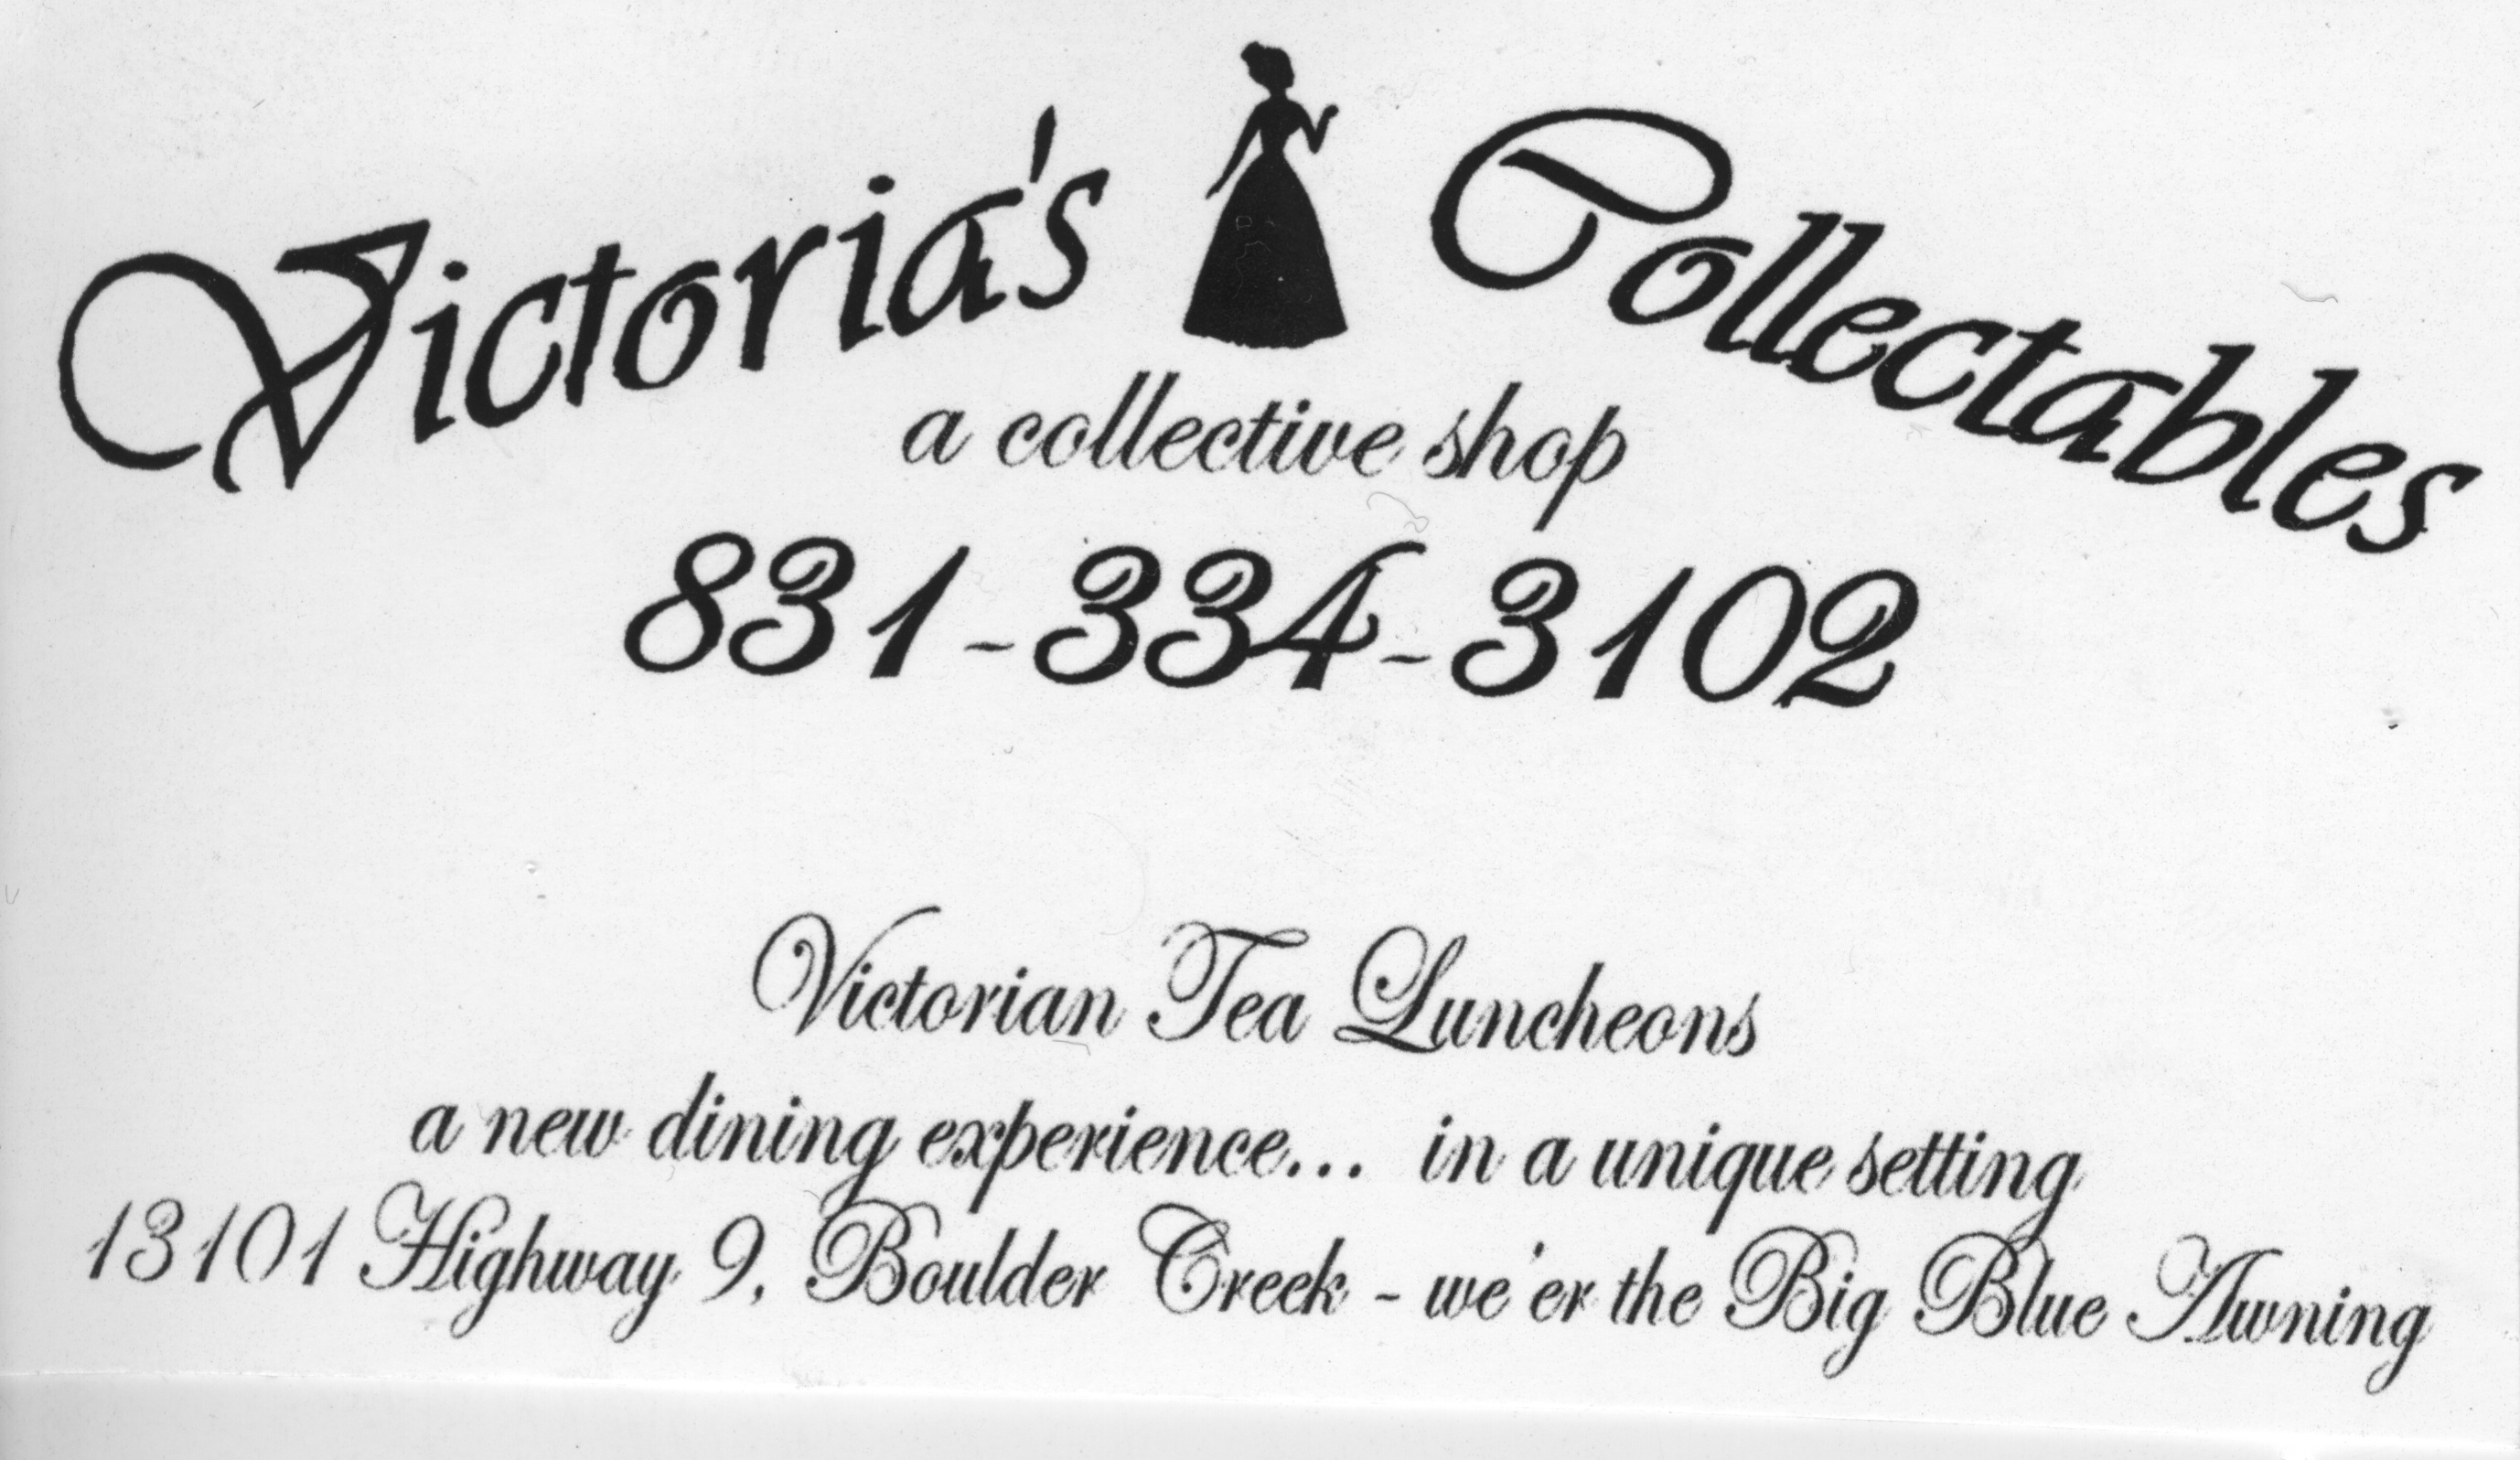 victorias-collectibes-ad-